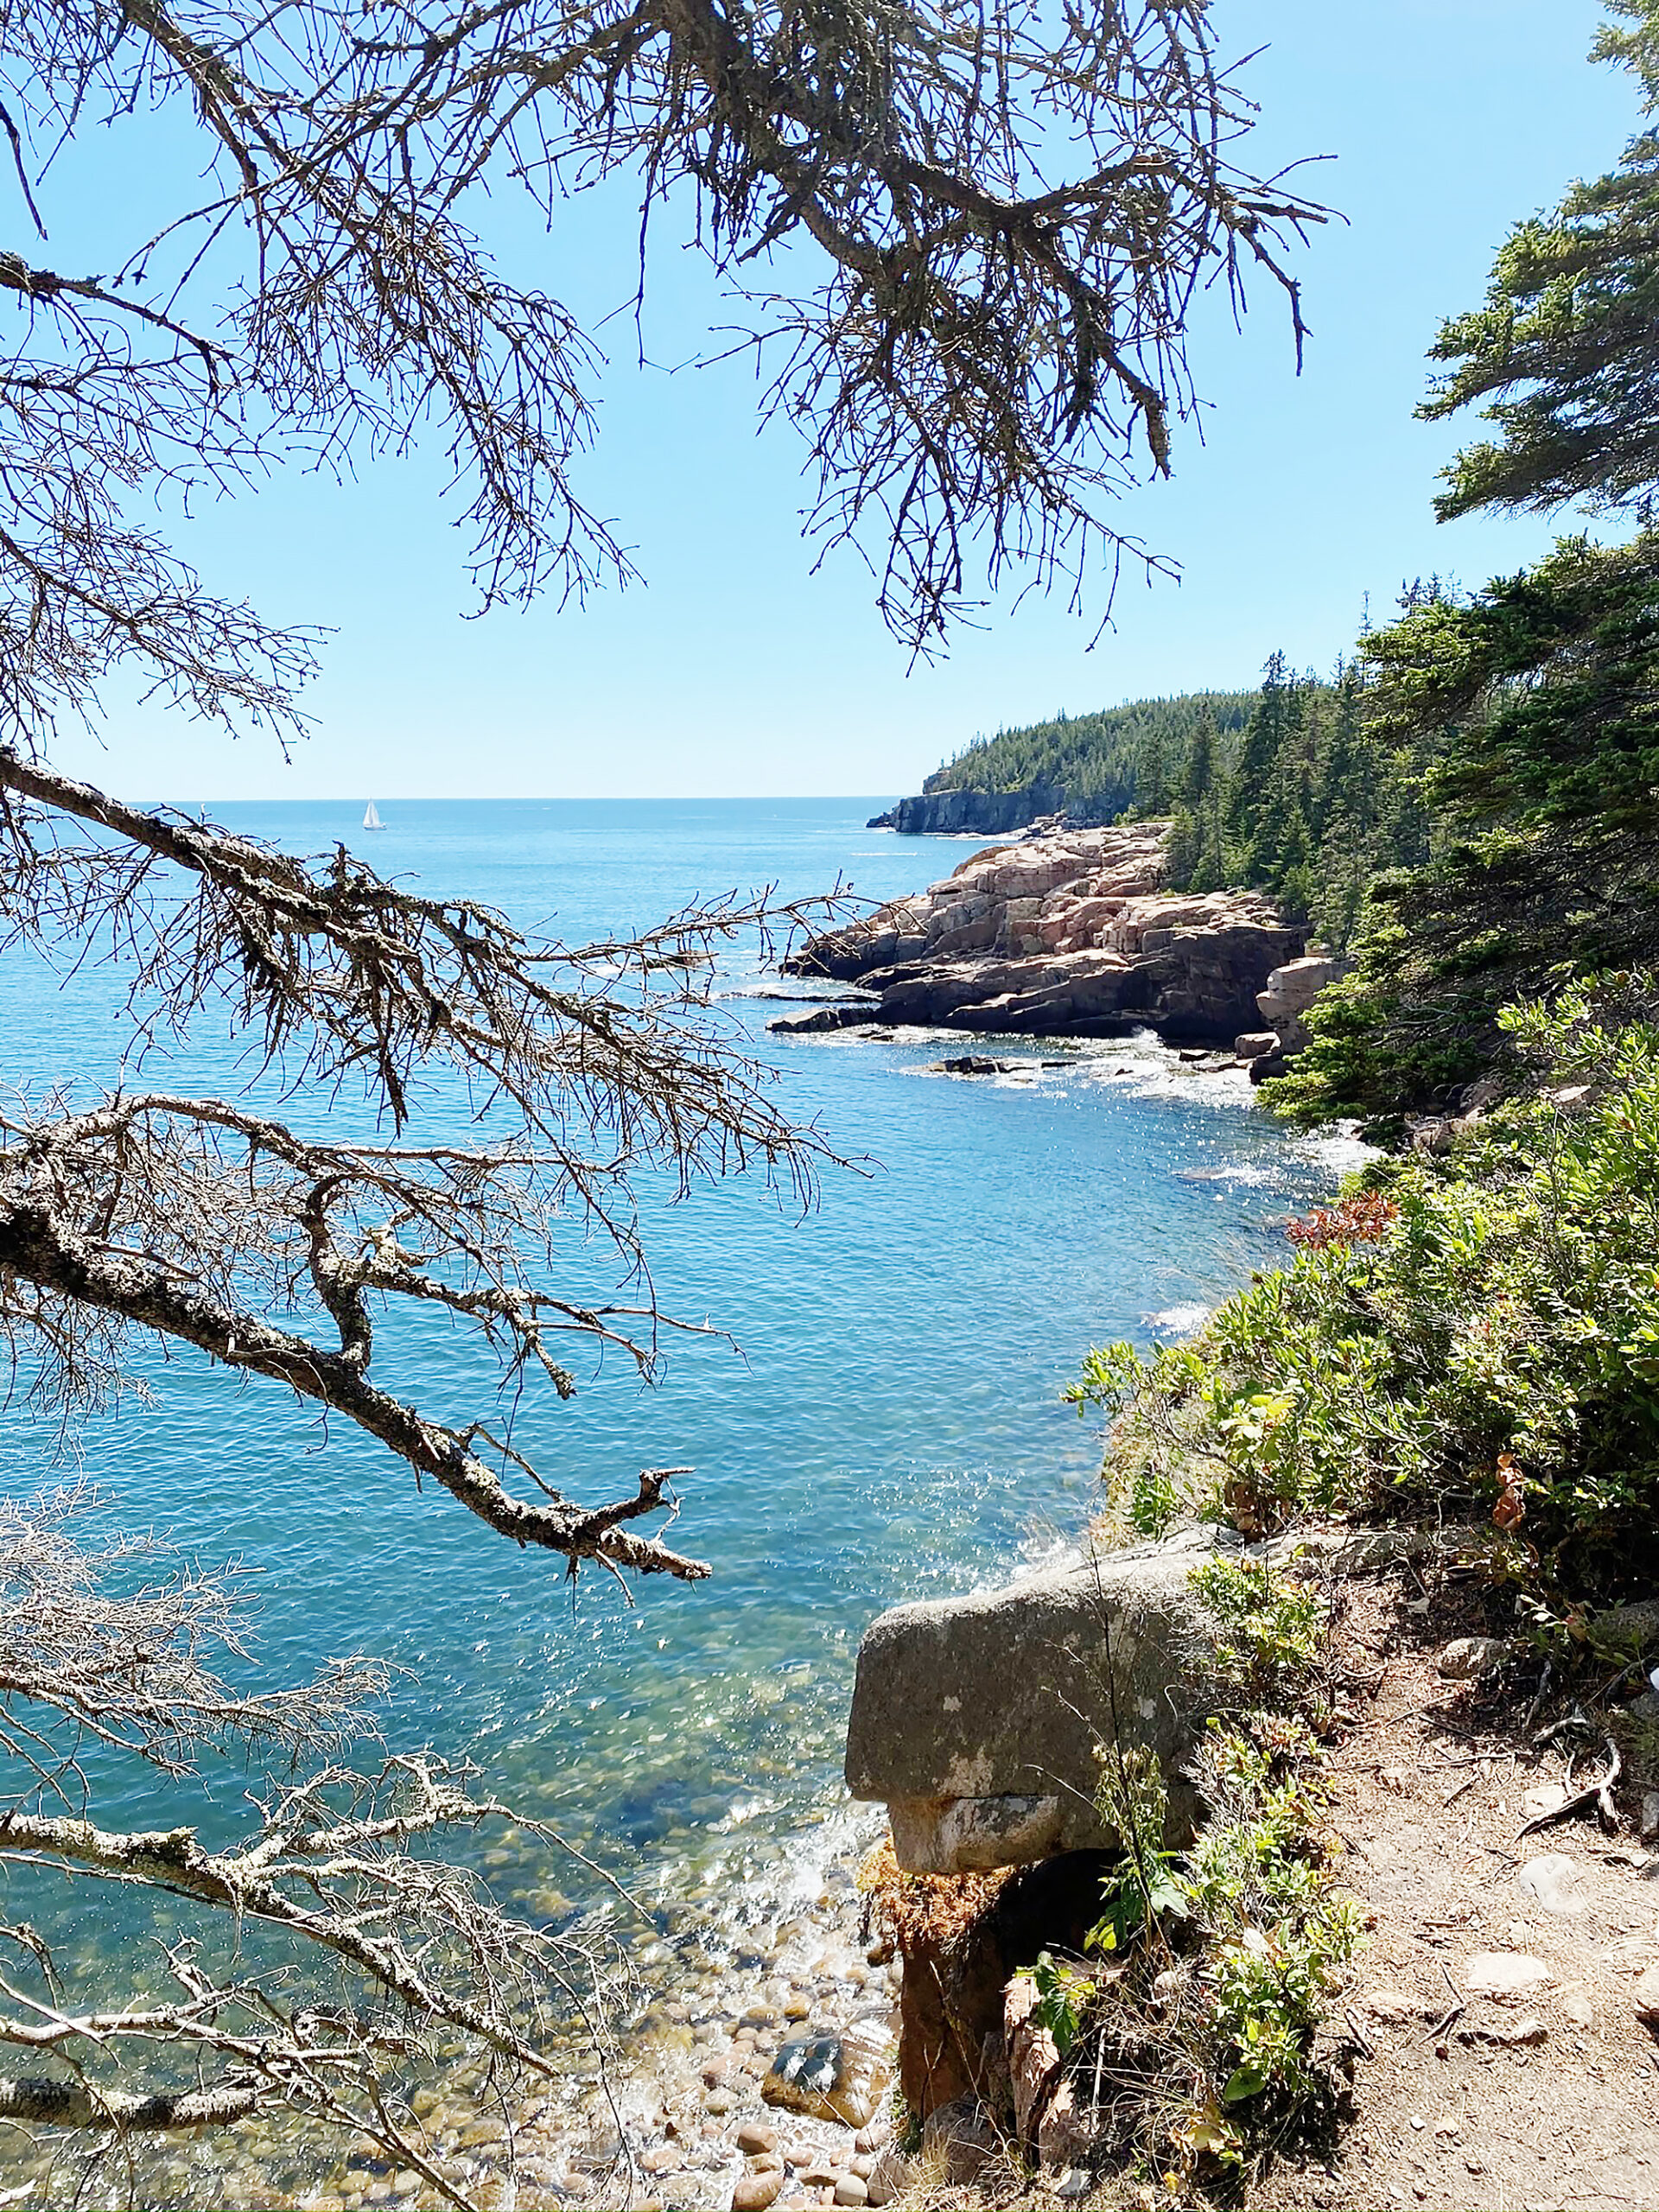 Hiking Acadia National Park with Kids and Dogs, What to do in Acadia National Park with Kids || DarlingDarleen.com Top Lifestyle CT Blogger Darling Darleen #acadia #acadianationalpark